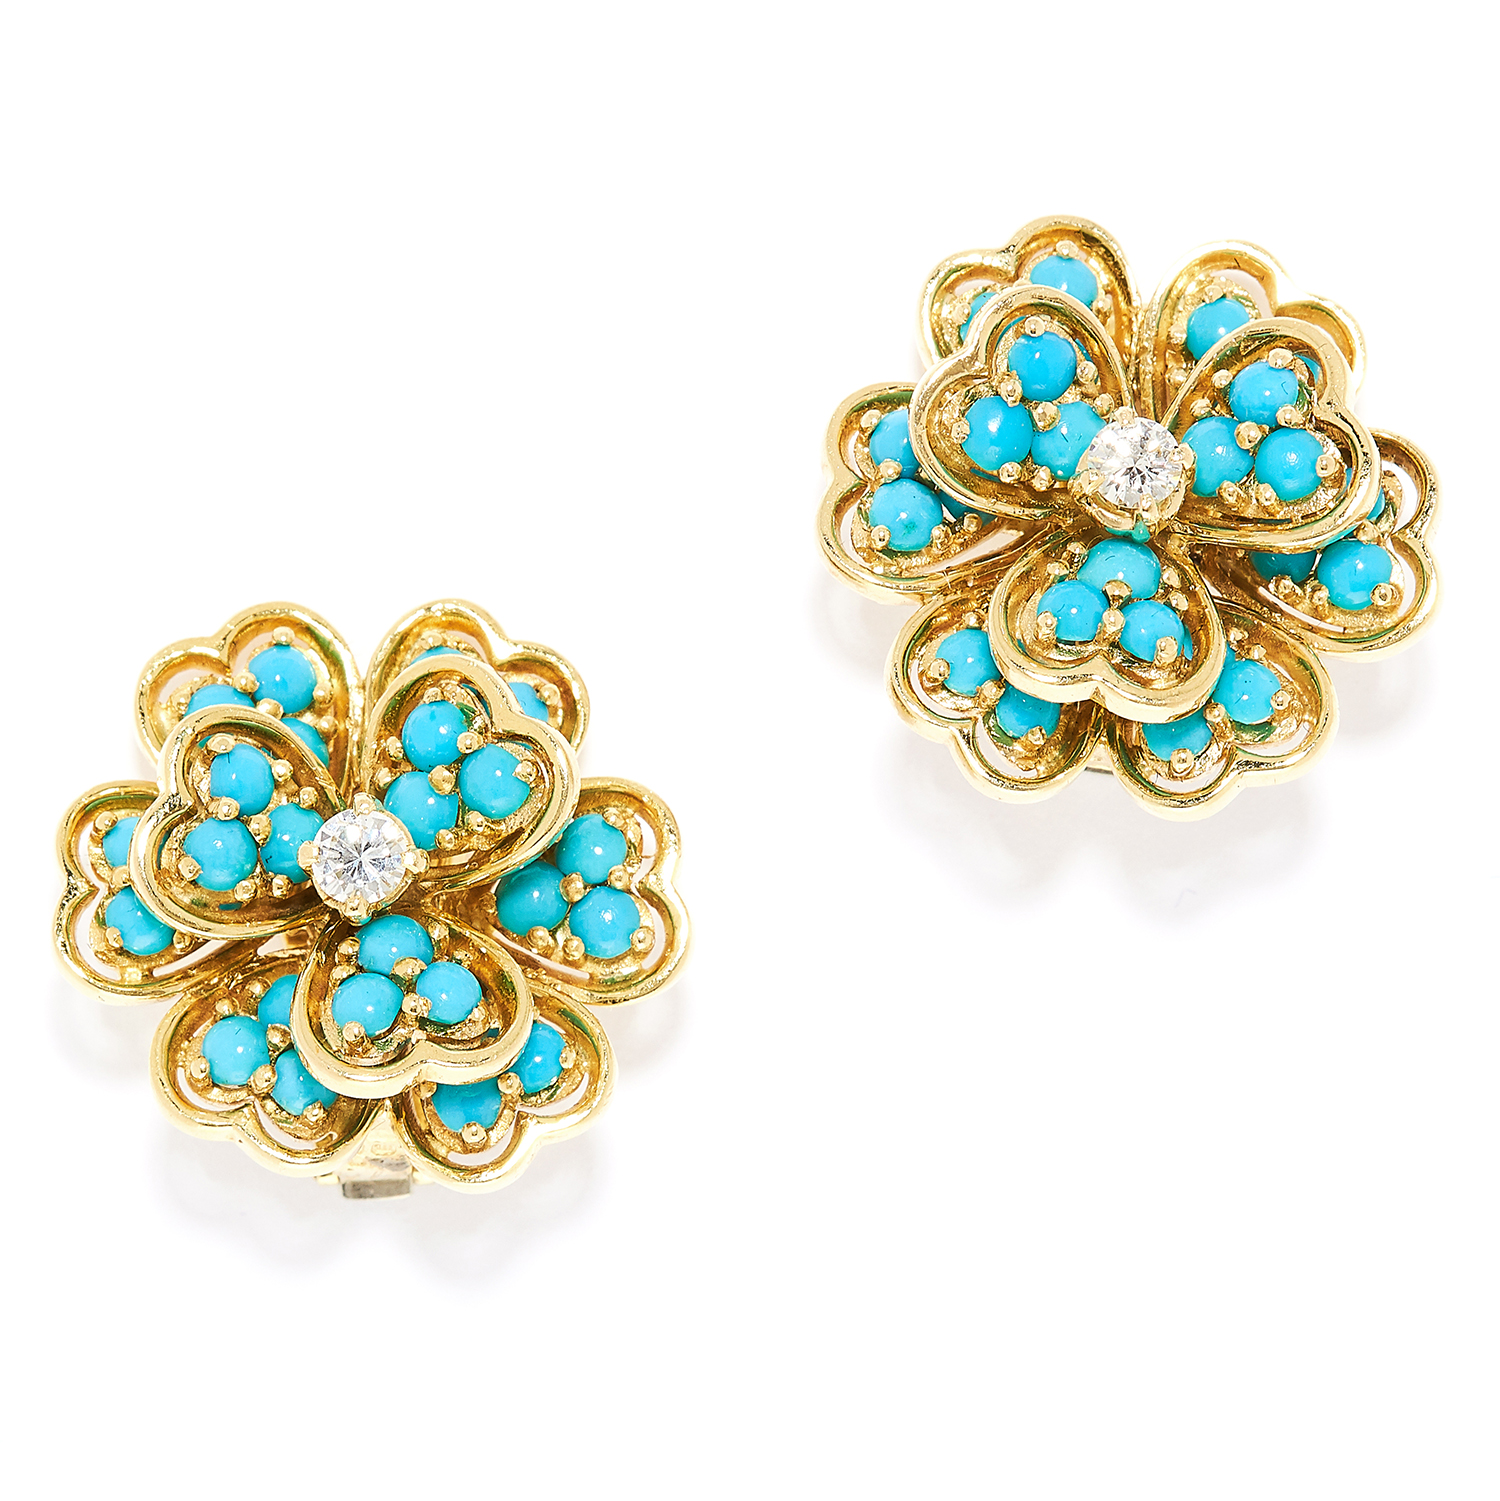 TURQUOISE AND DIAMOND CLIP EARRINGS, BEN ROSENFELD 1963 in 18ct yellow gold, each designed as a